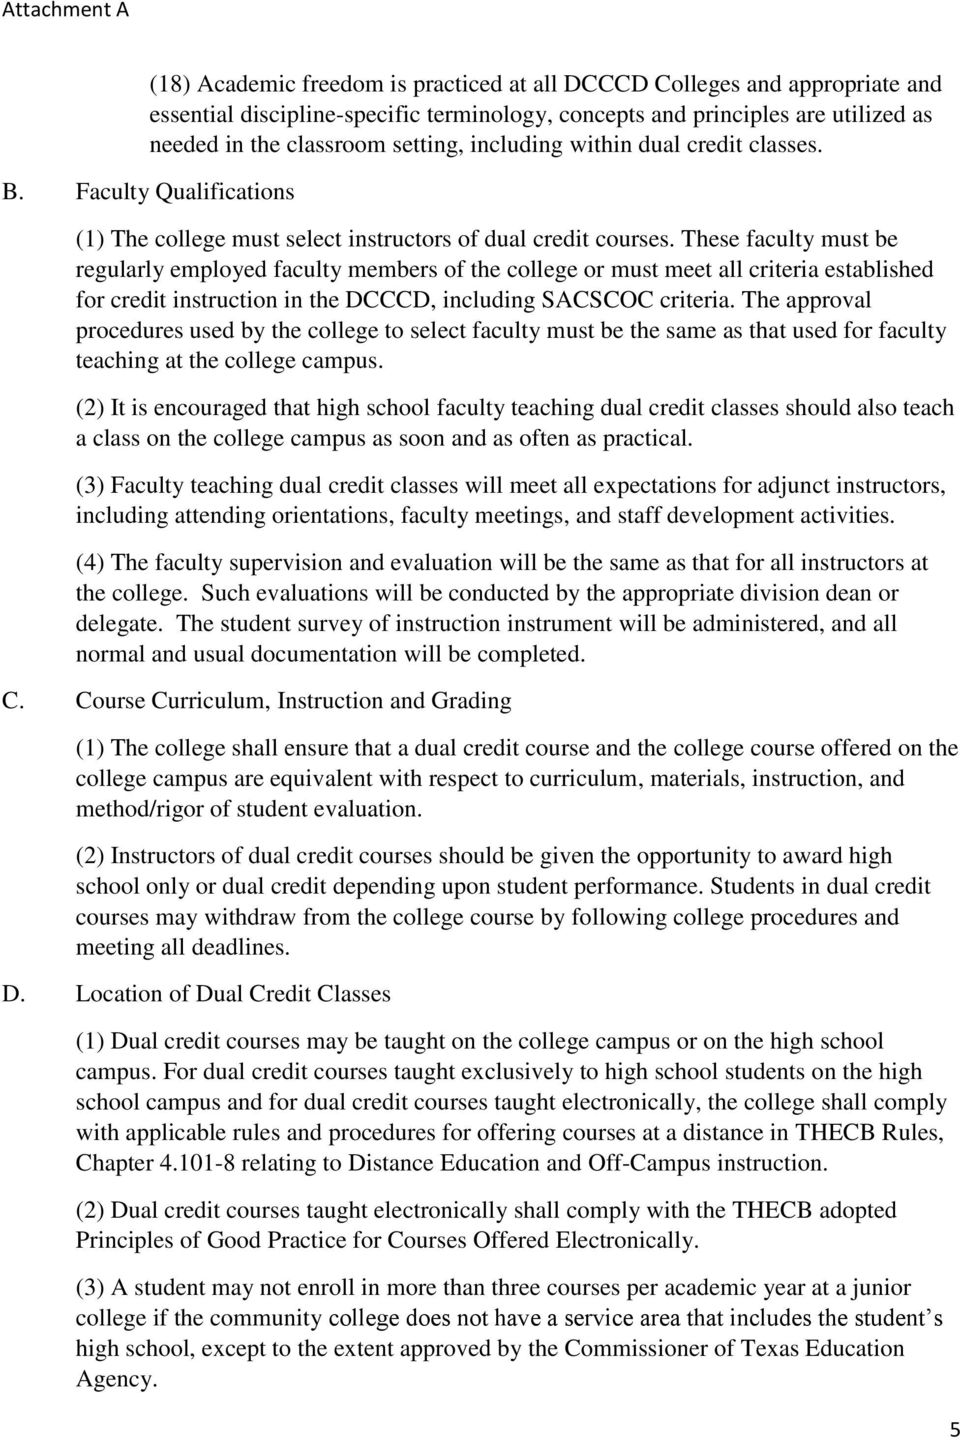 These faculty must be regularly employed faculty members of the college or must meet all criteria established for credit instruction in the DCCCD, including SACSCOC criteria.